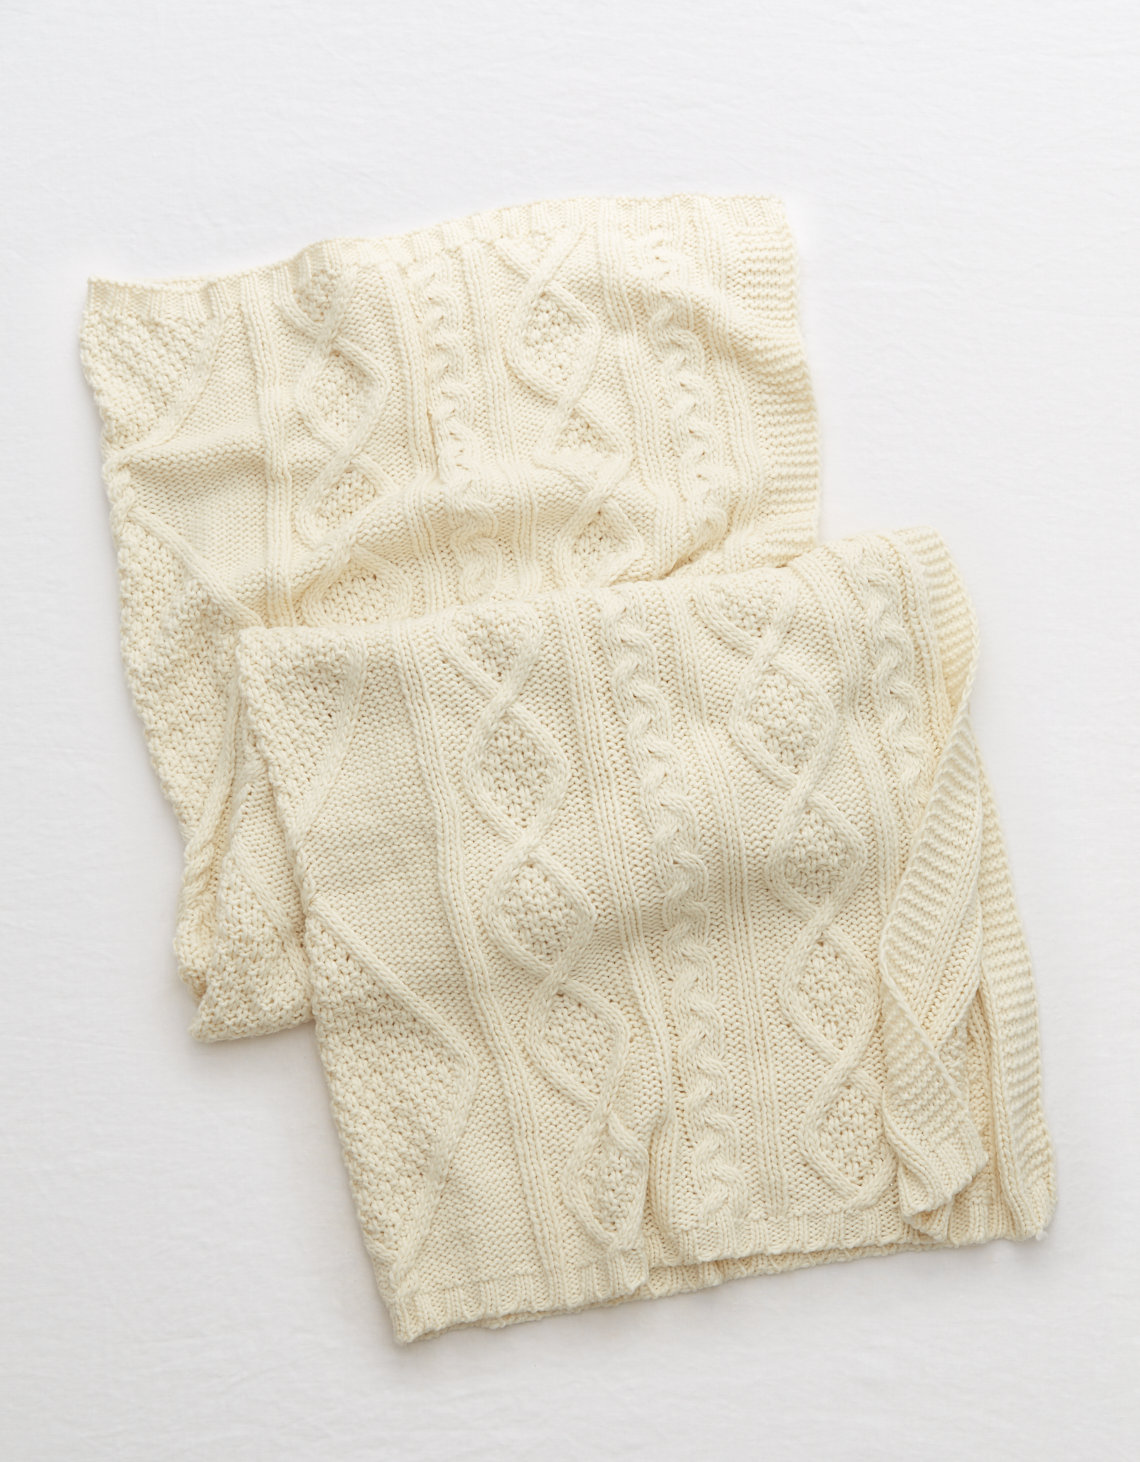 Aerie Classic Cable Knit Blanket Natural Aerie For American Eagle